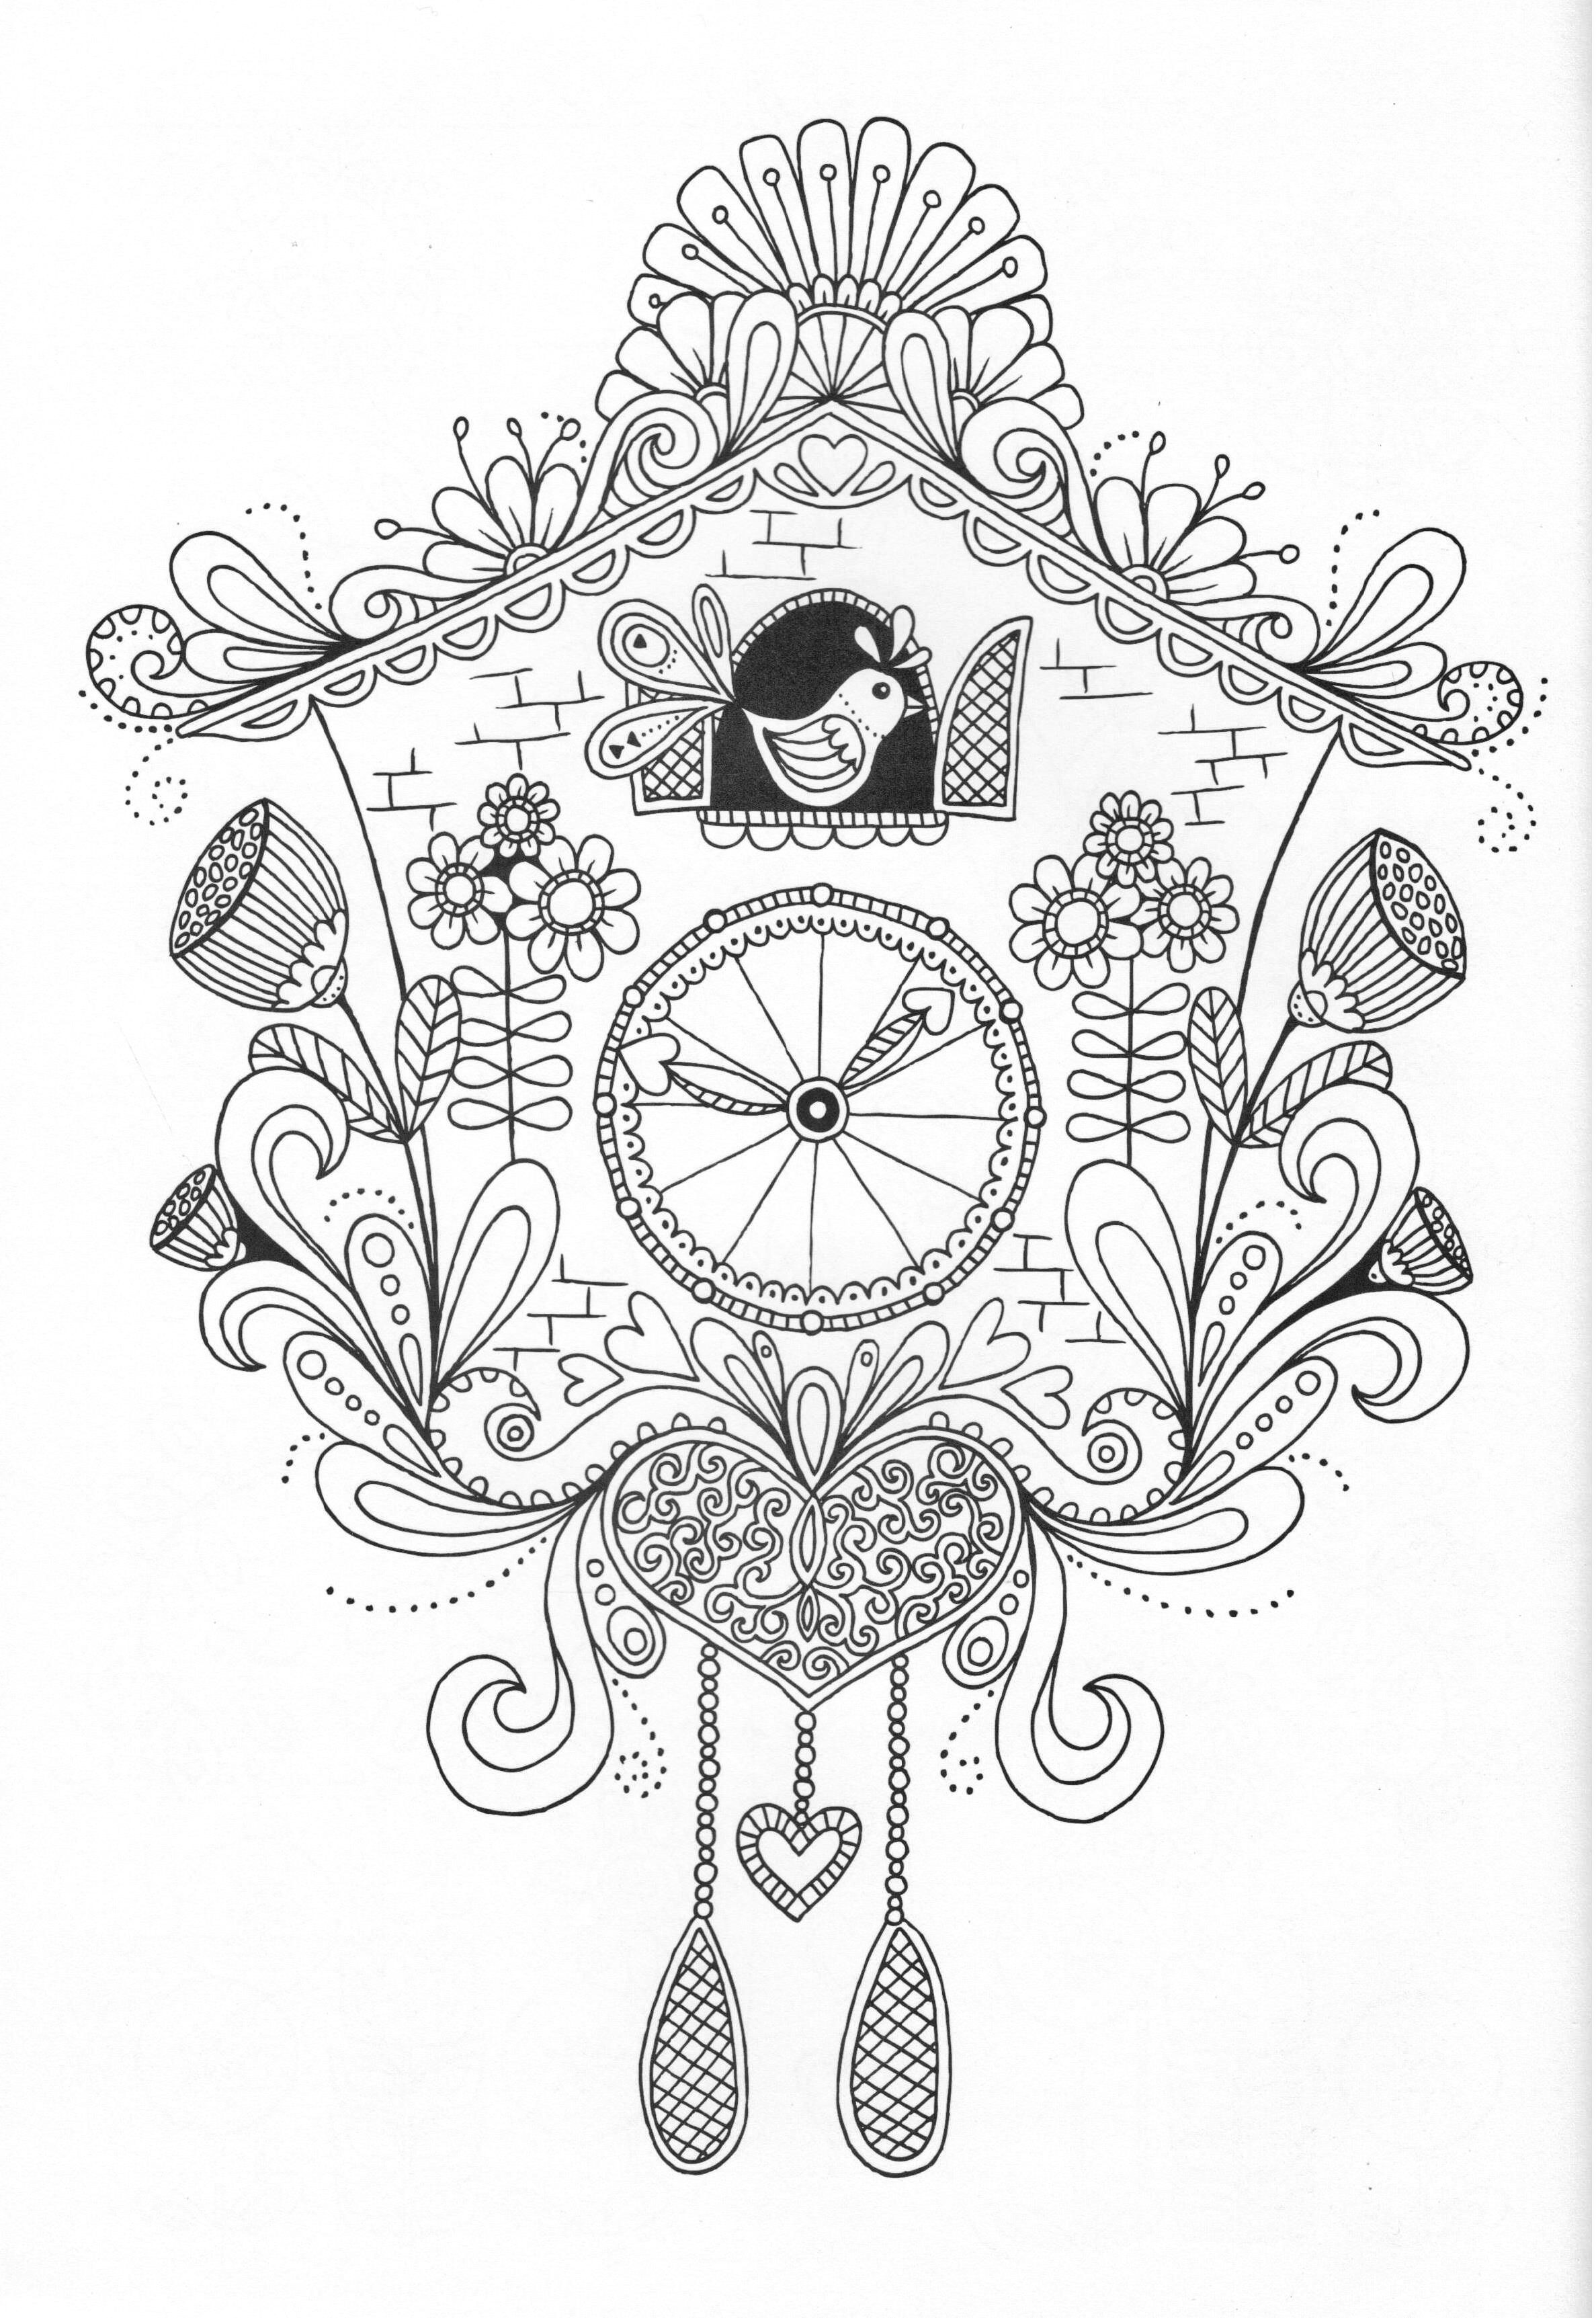 Best ideas about Adult Coloring Books . Save or Pin Adult coloring page Now.